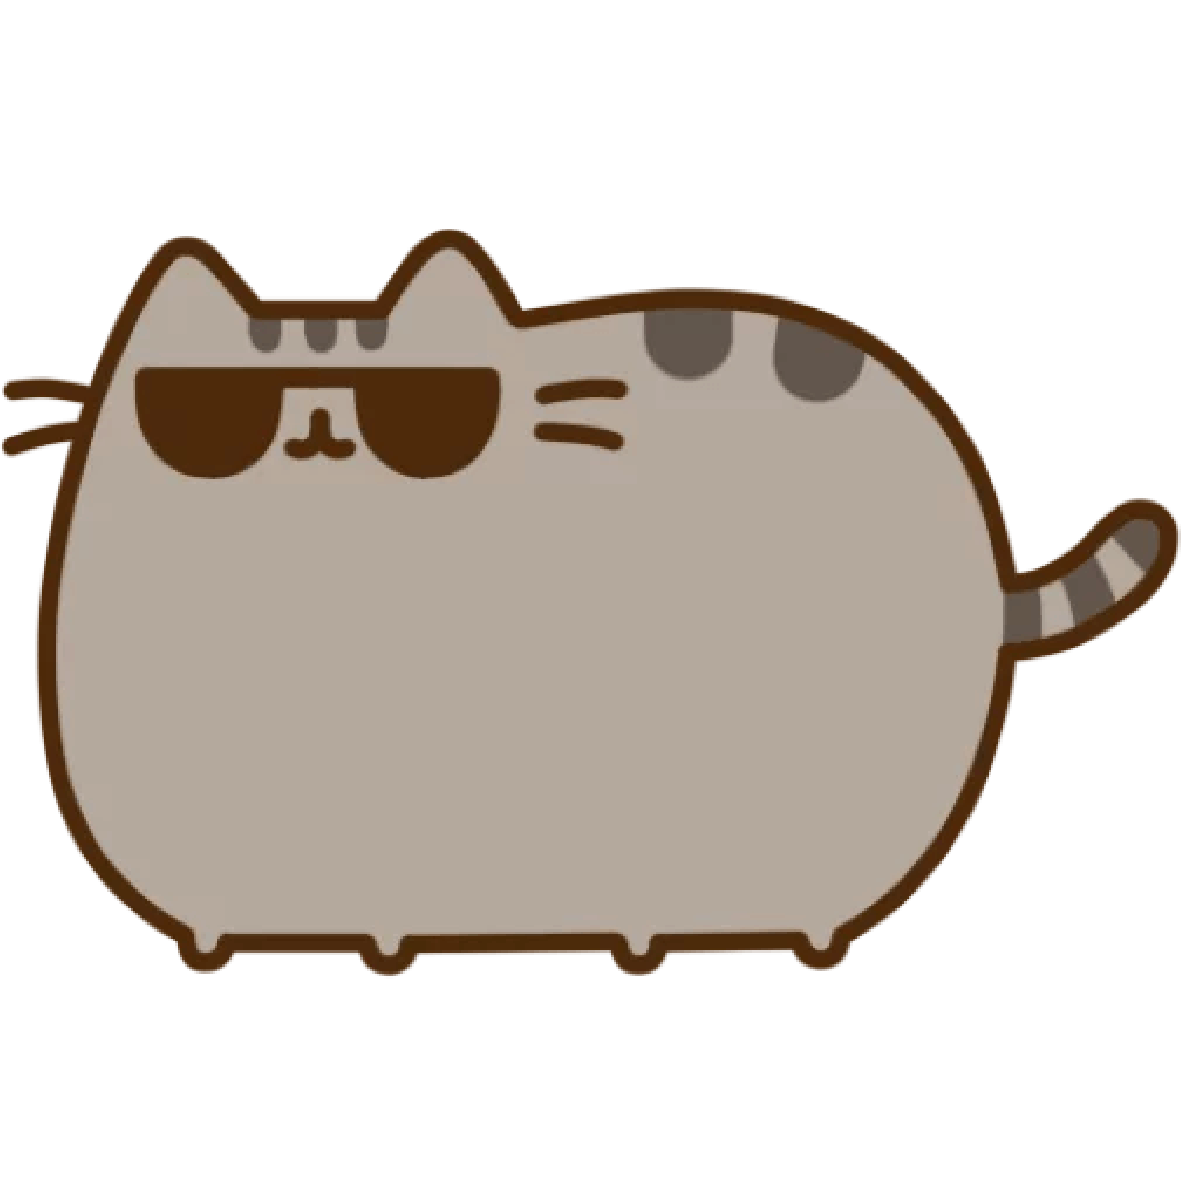 T rex clipart with sun glasses clipart stock Tricouri si bluze cu Cool pusheen with glasses | design ideas ... clipart stock